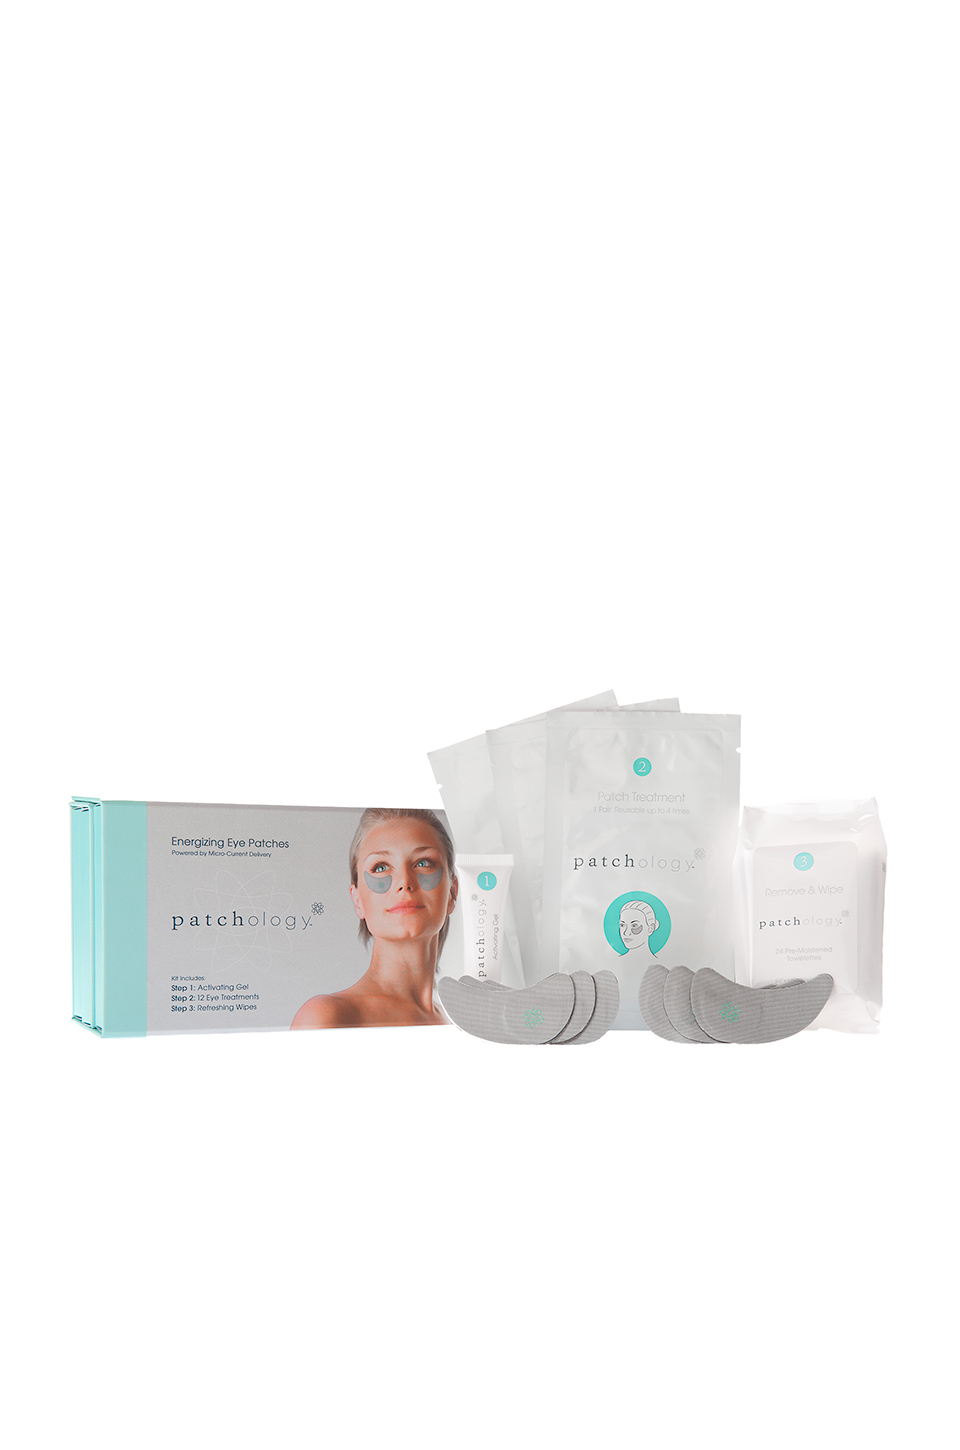 Patchology Energizing Eye Kit 12 Treatments in